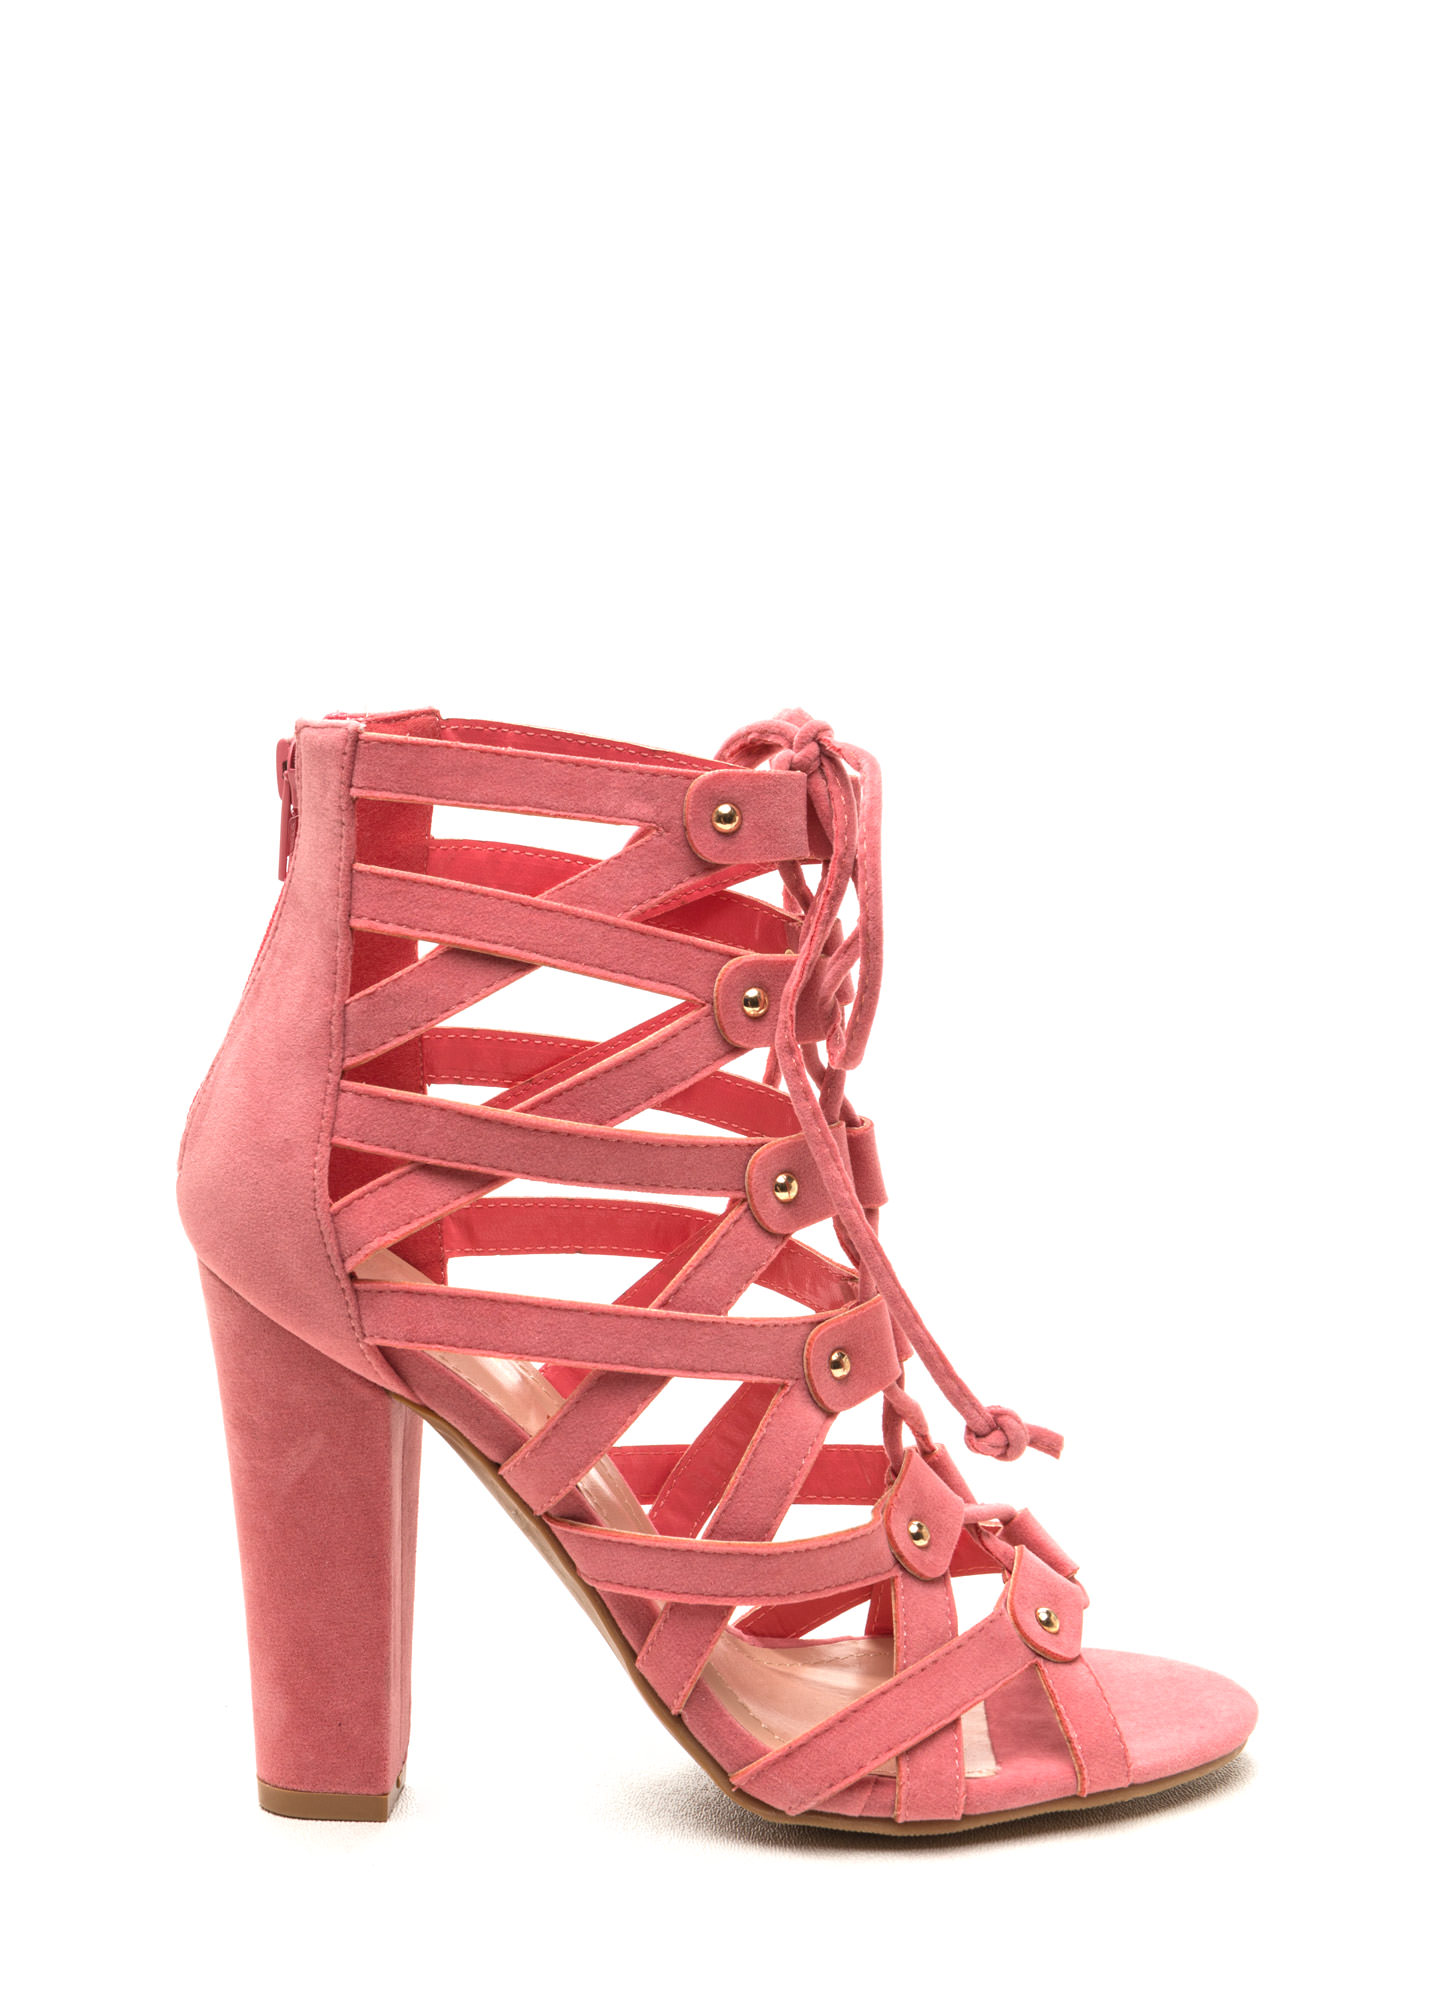 Eyes On The Prize Faux Suede Heels PINK